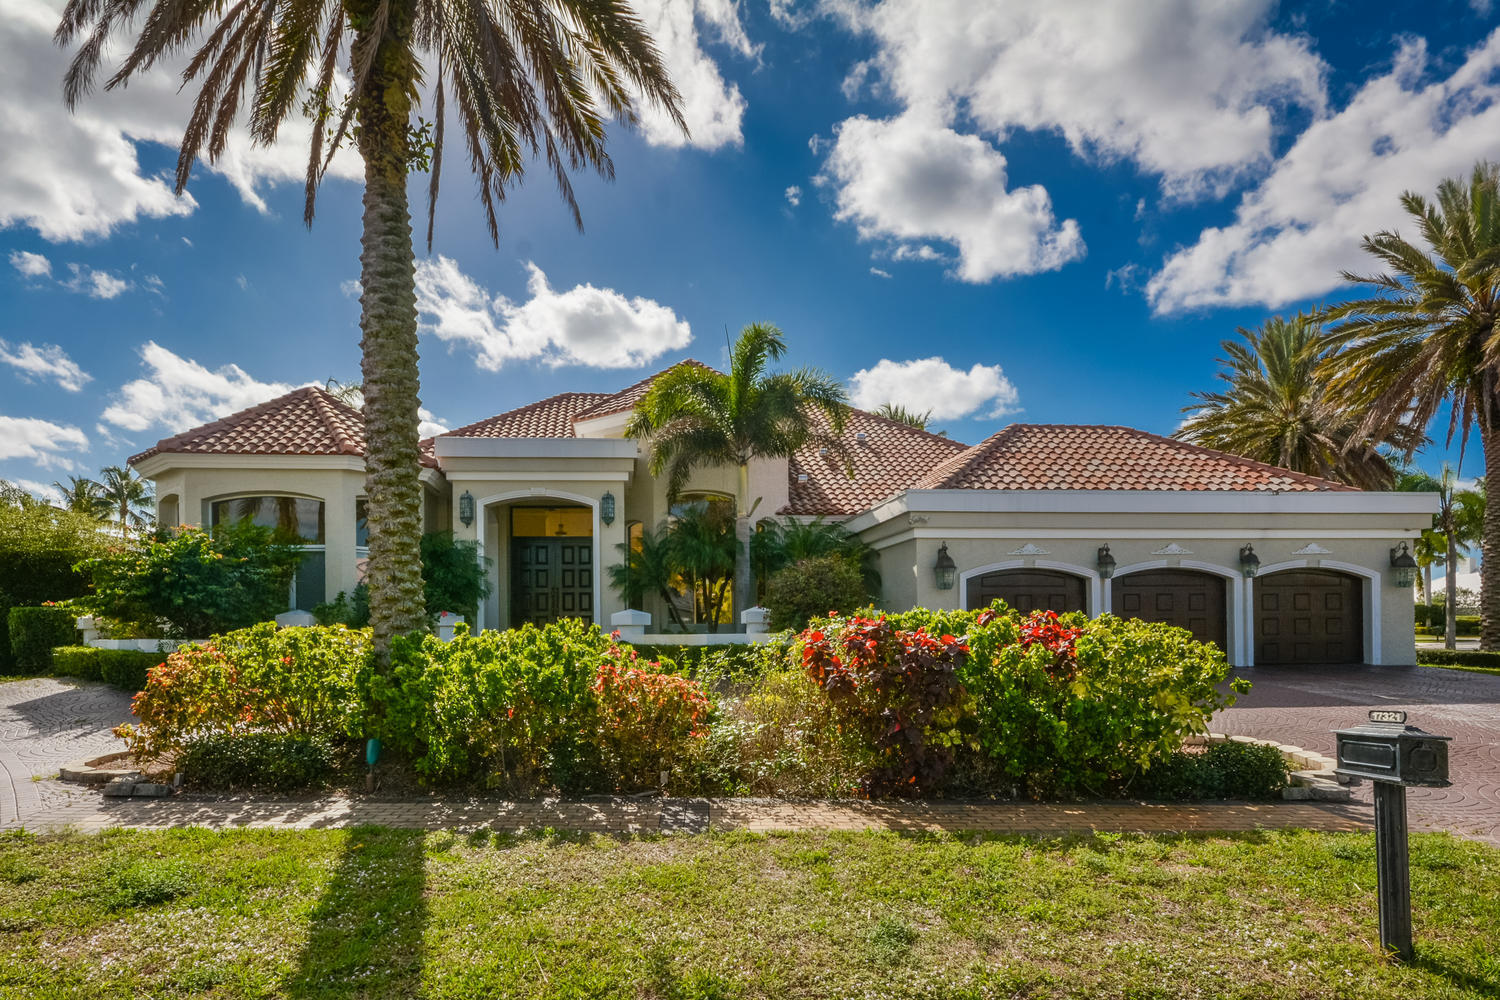 Boca Raton: St. Andrews - listed at 1,075,000 (17321 Allenbury Ct)